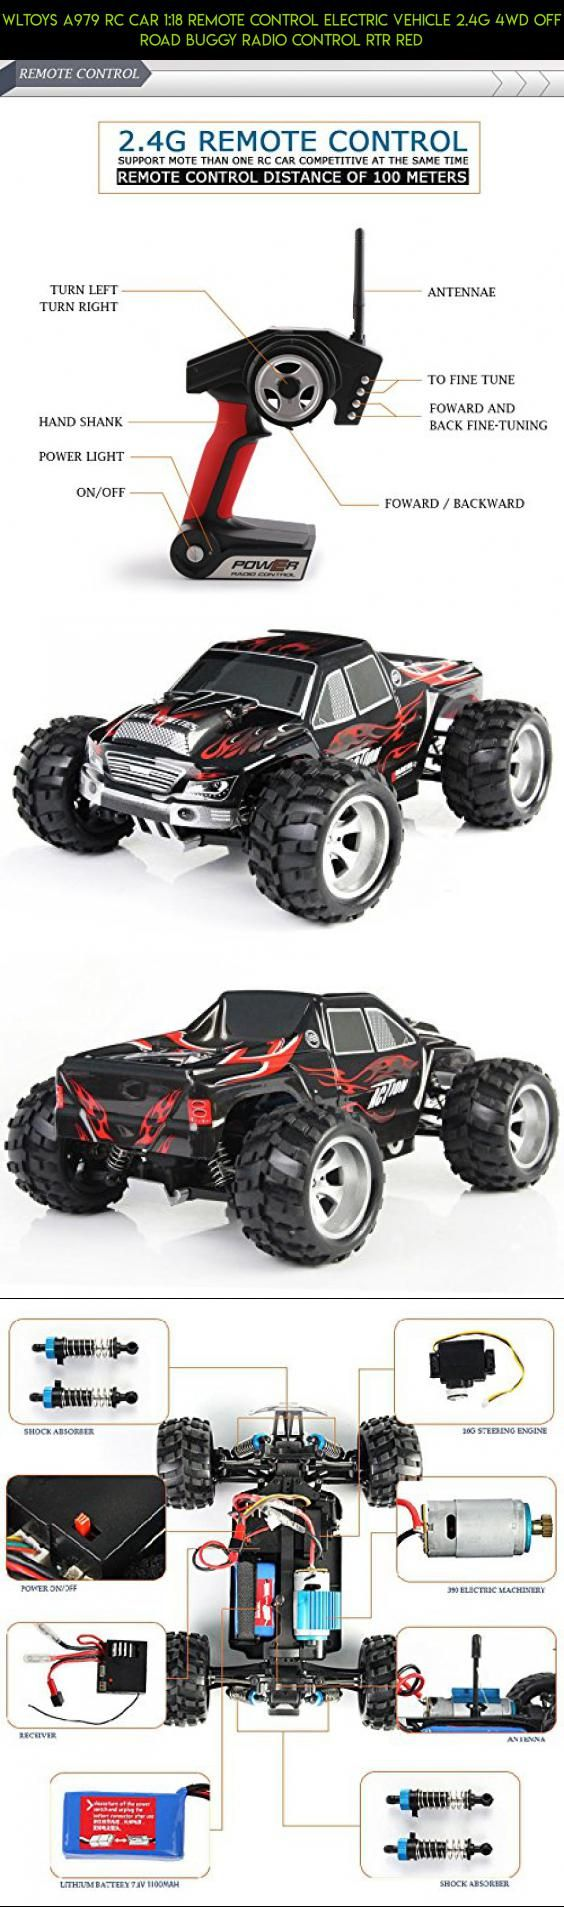 Wltoys a979 rc car 1 18 remote control electric vehicle 2 4g 4wd off road